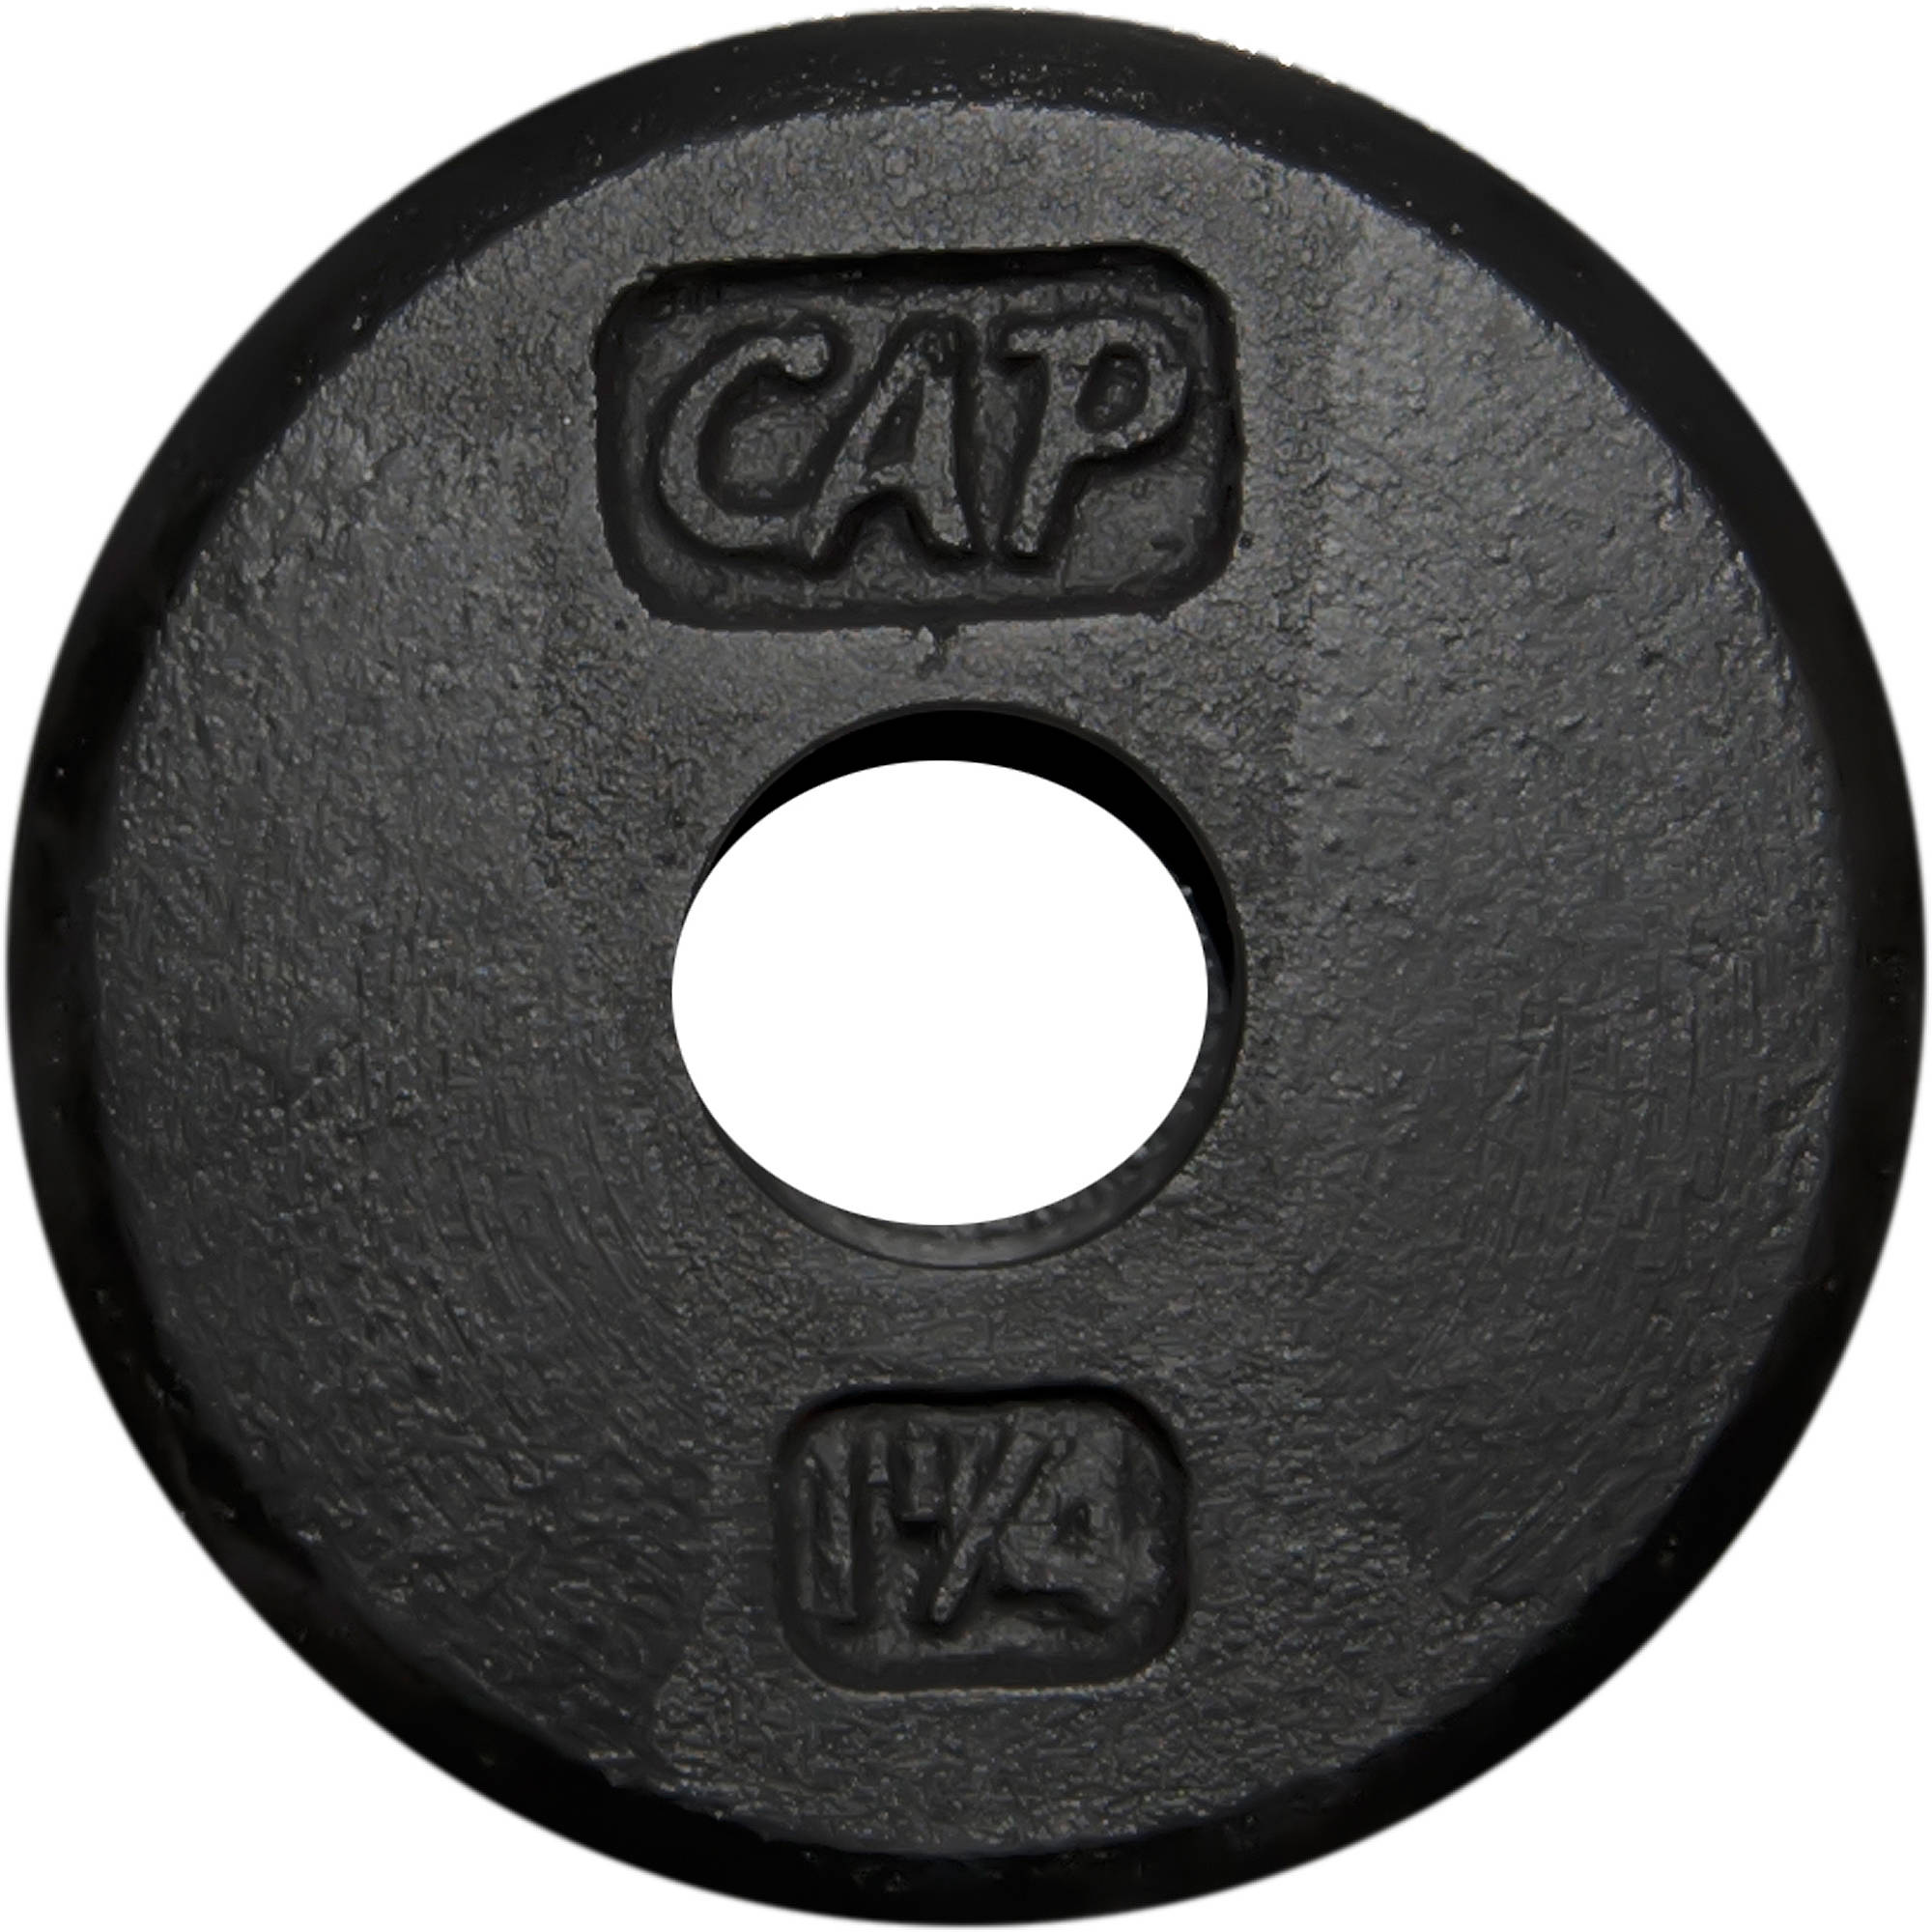 "CAP Barbell 1"" Cast Iron Weight Plates, Black"